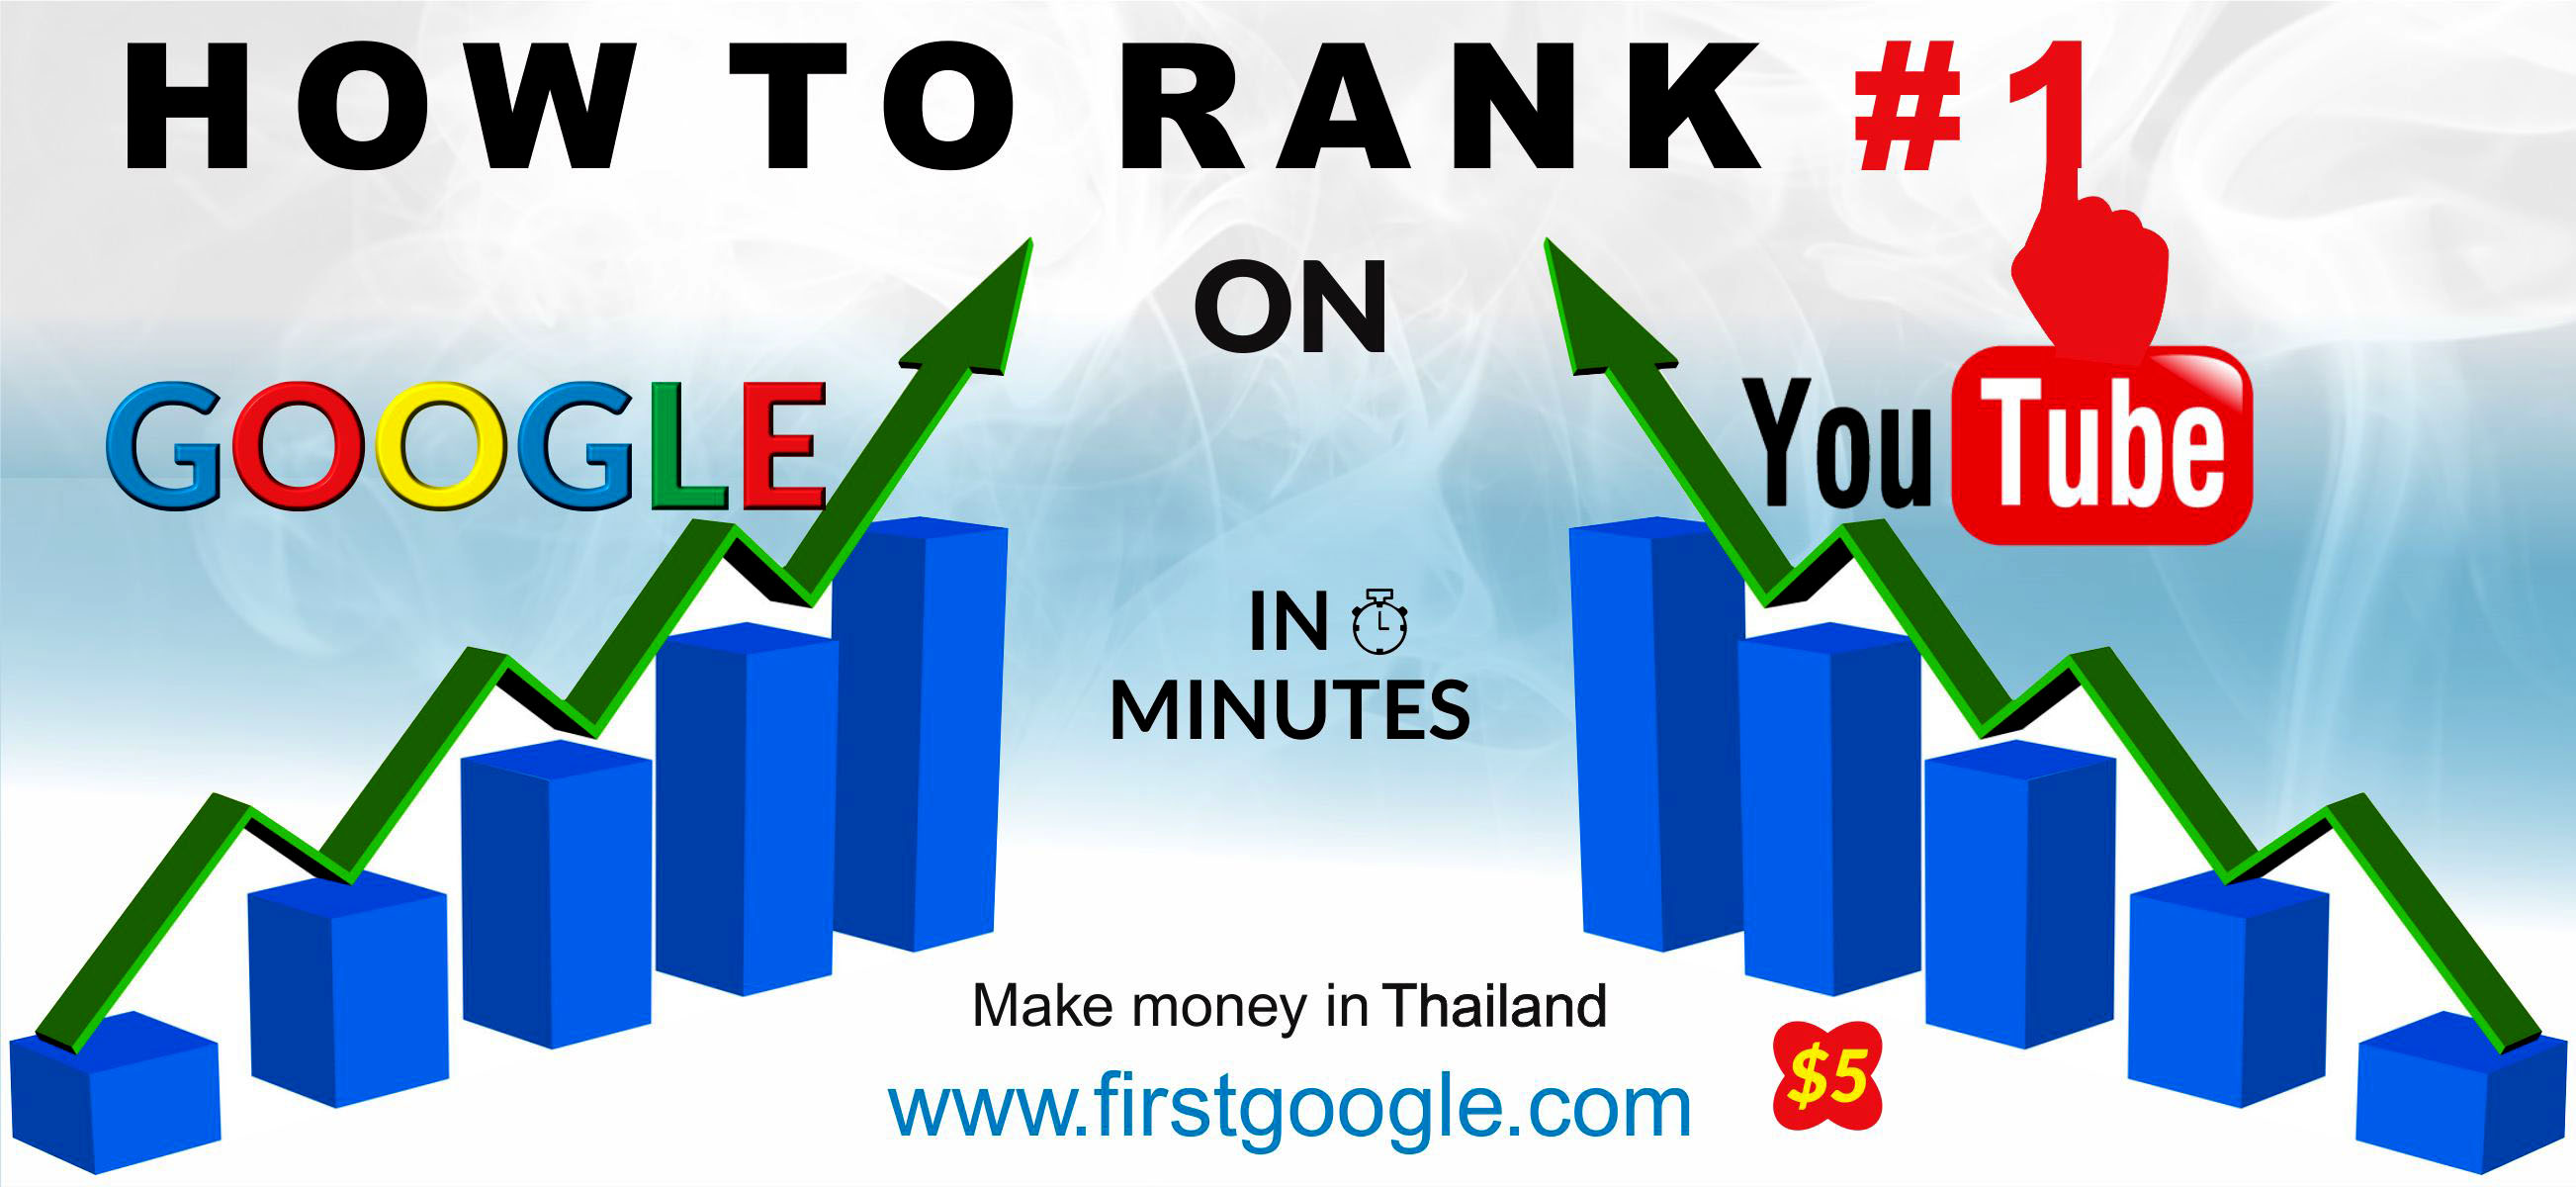 Get Banner Ads, Roll-up, Facebook, YouTube, Twitter, LinkedIn Cover photo